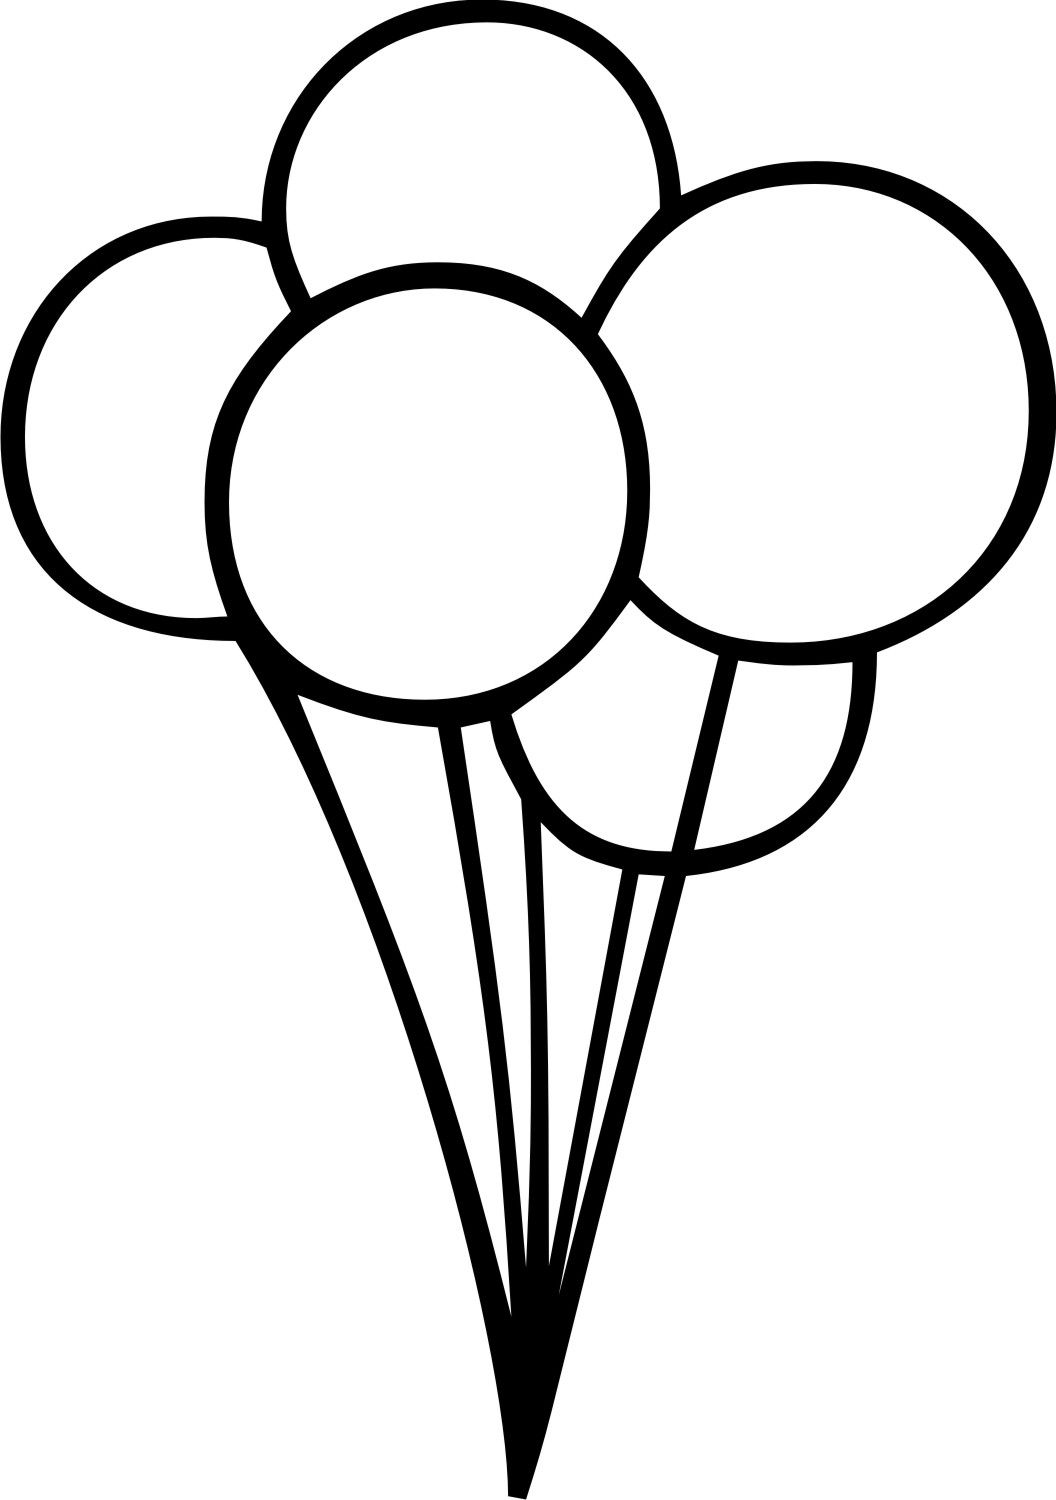 Clipart Of Balloons Black And White.